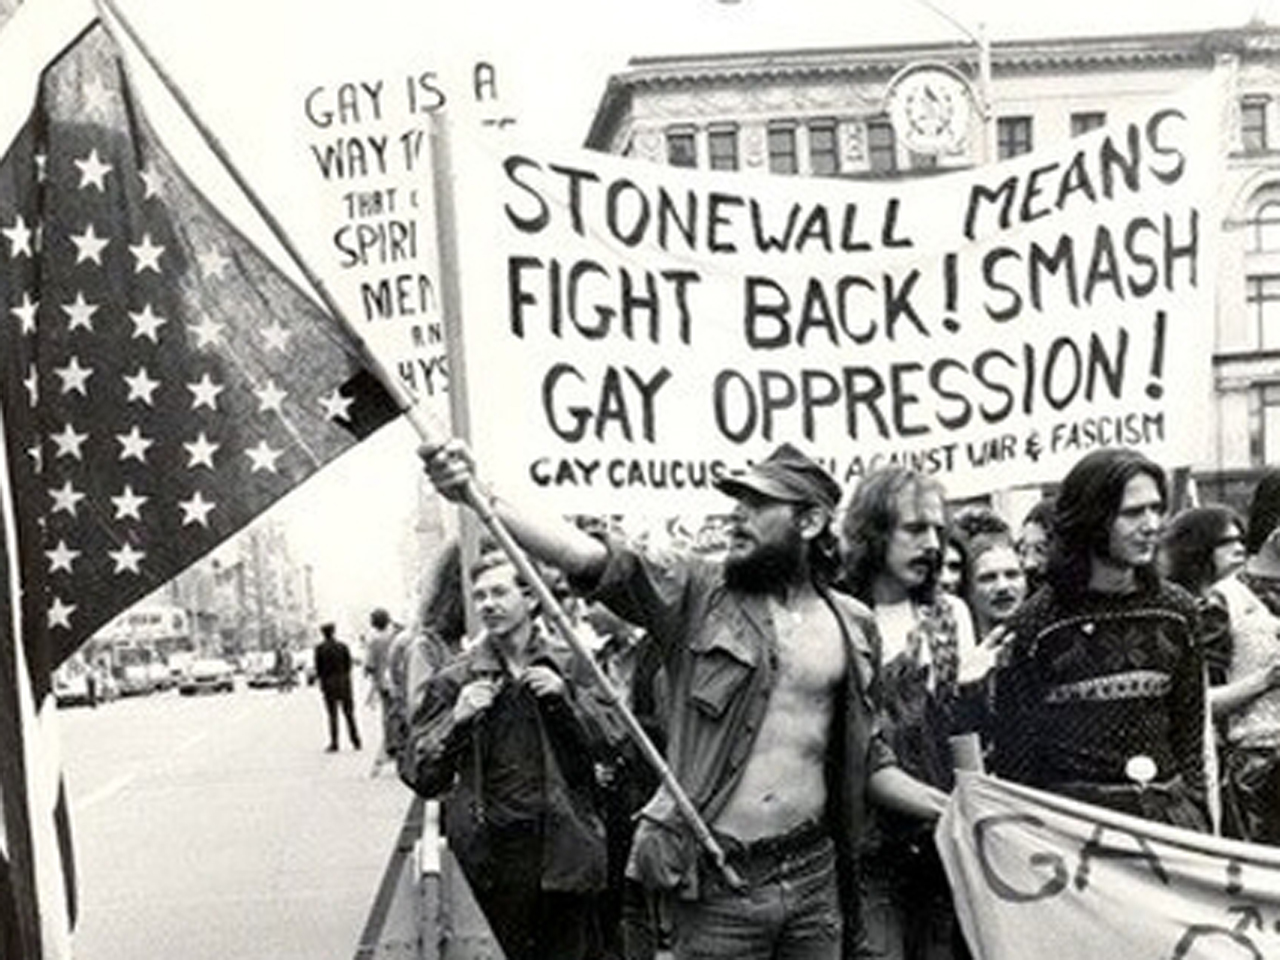 the stonewall hill and the history of the gay rights movement in the united states Timeline of civil rights  for the gay rights movement in the united states the stonewall  in the history of civil rights in the united states.